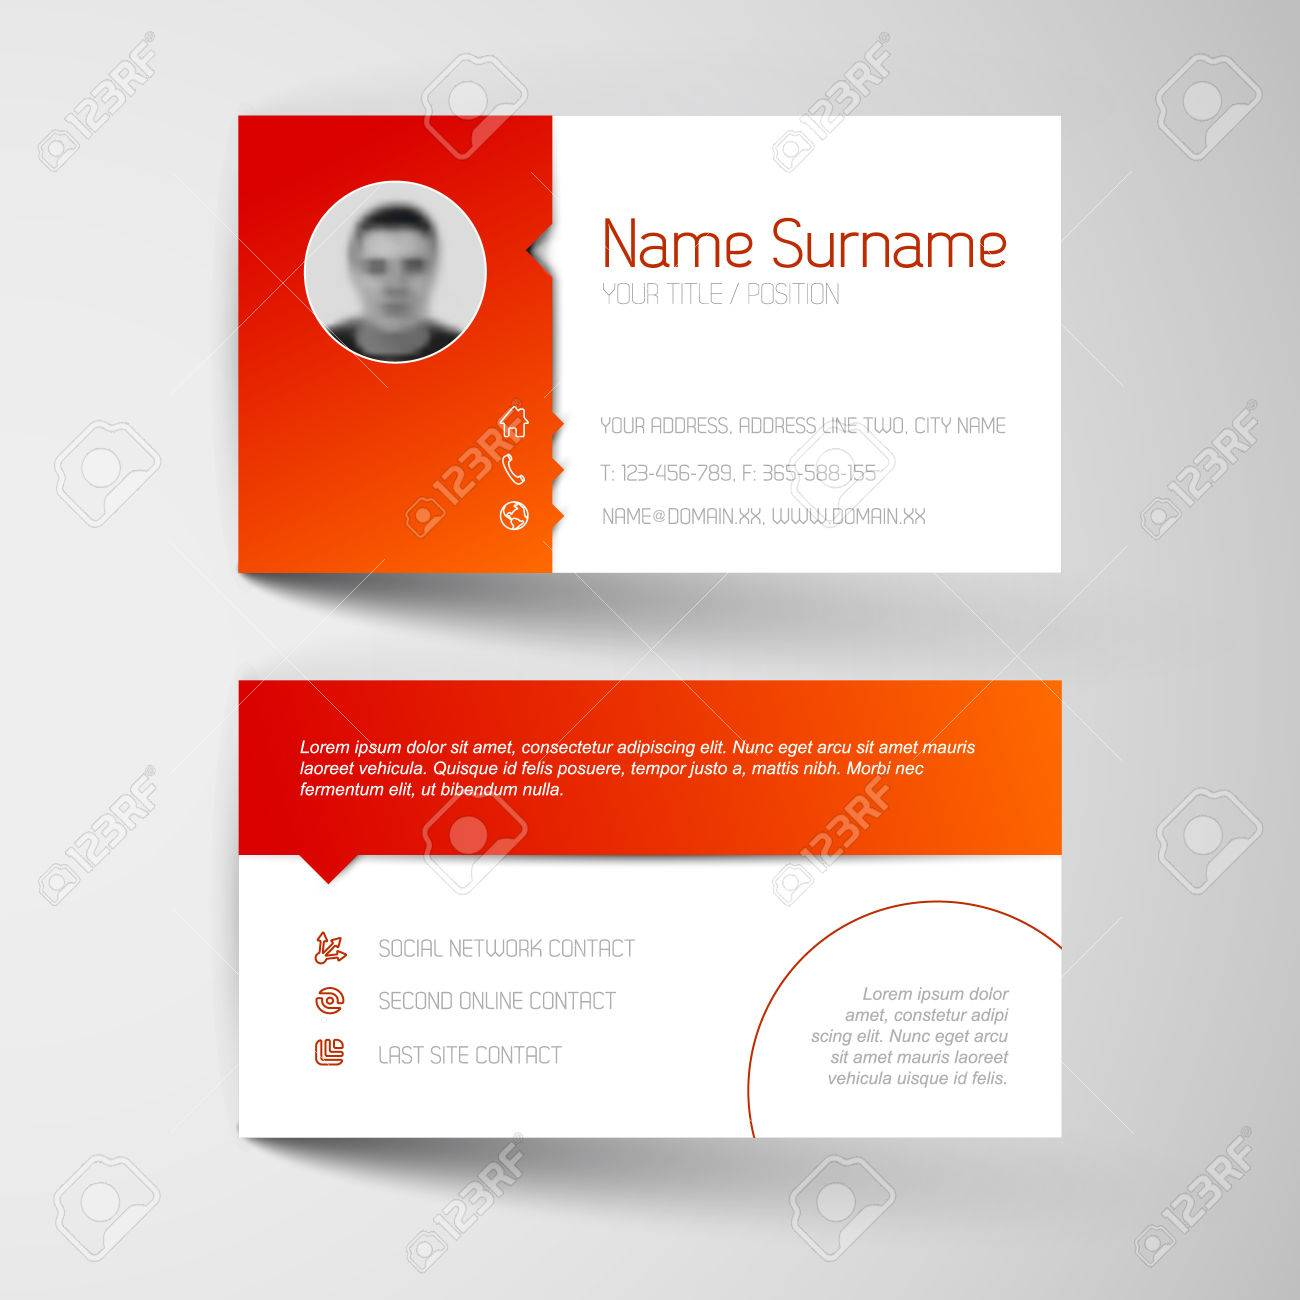 Spiritual business cards image collections free business cards religious business cards choice image free business cards business business cards simple church examples of resumes magicingreecefo Image collections